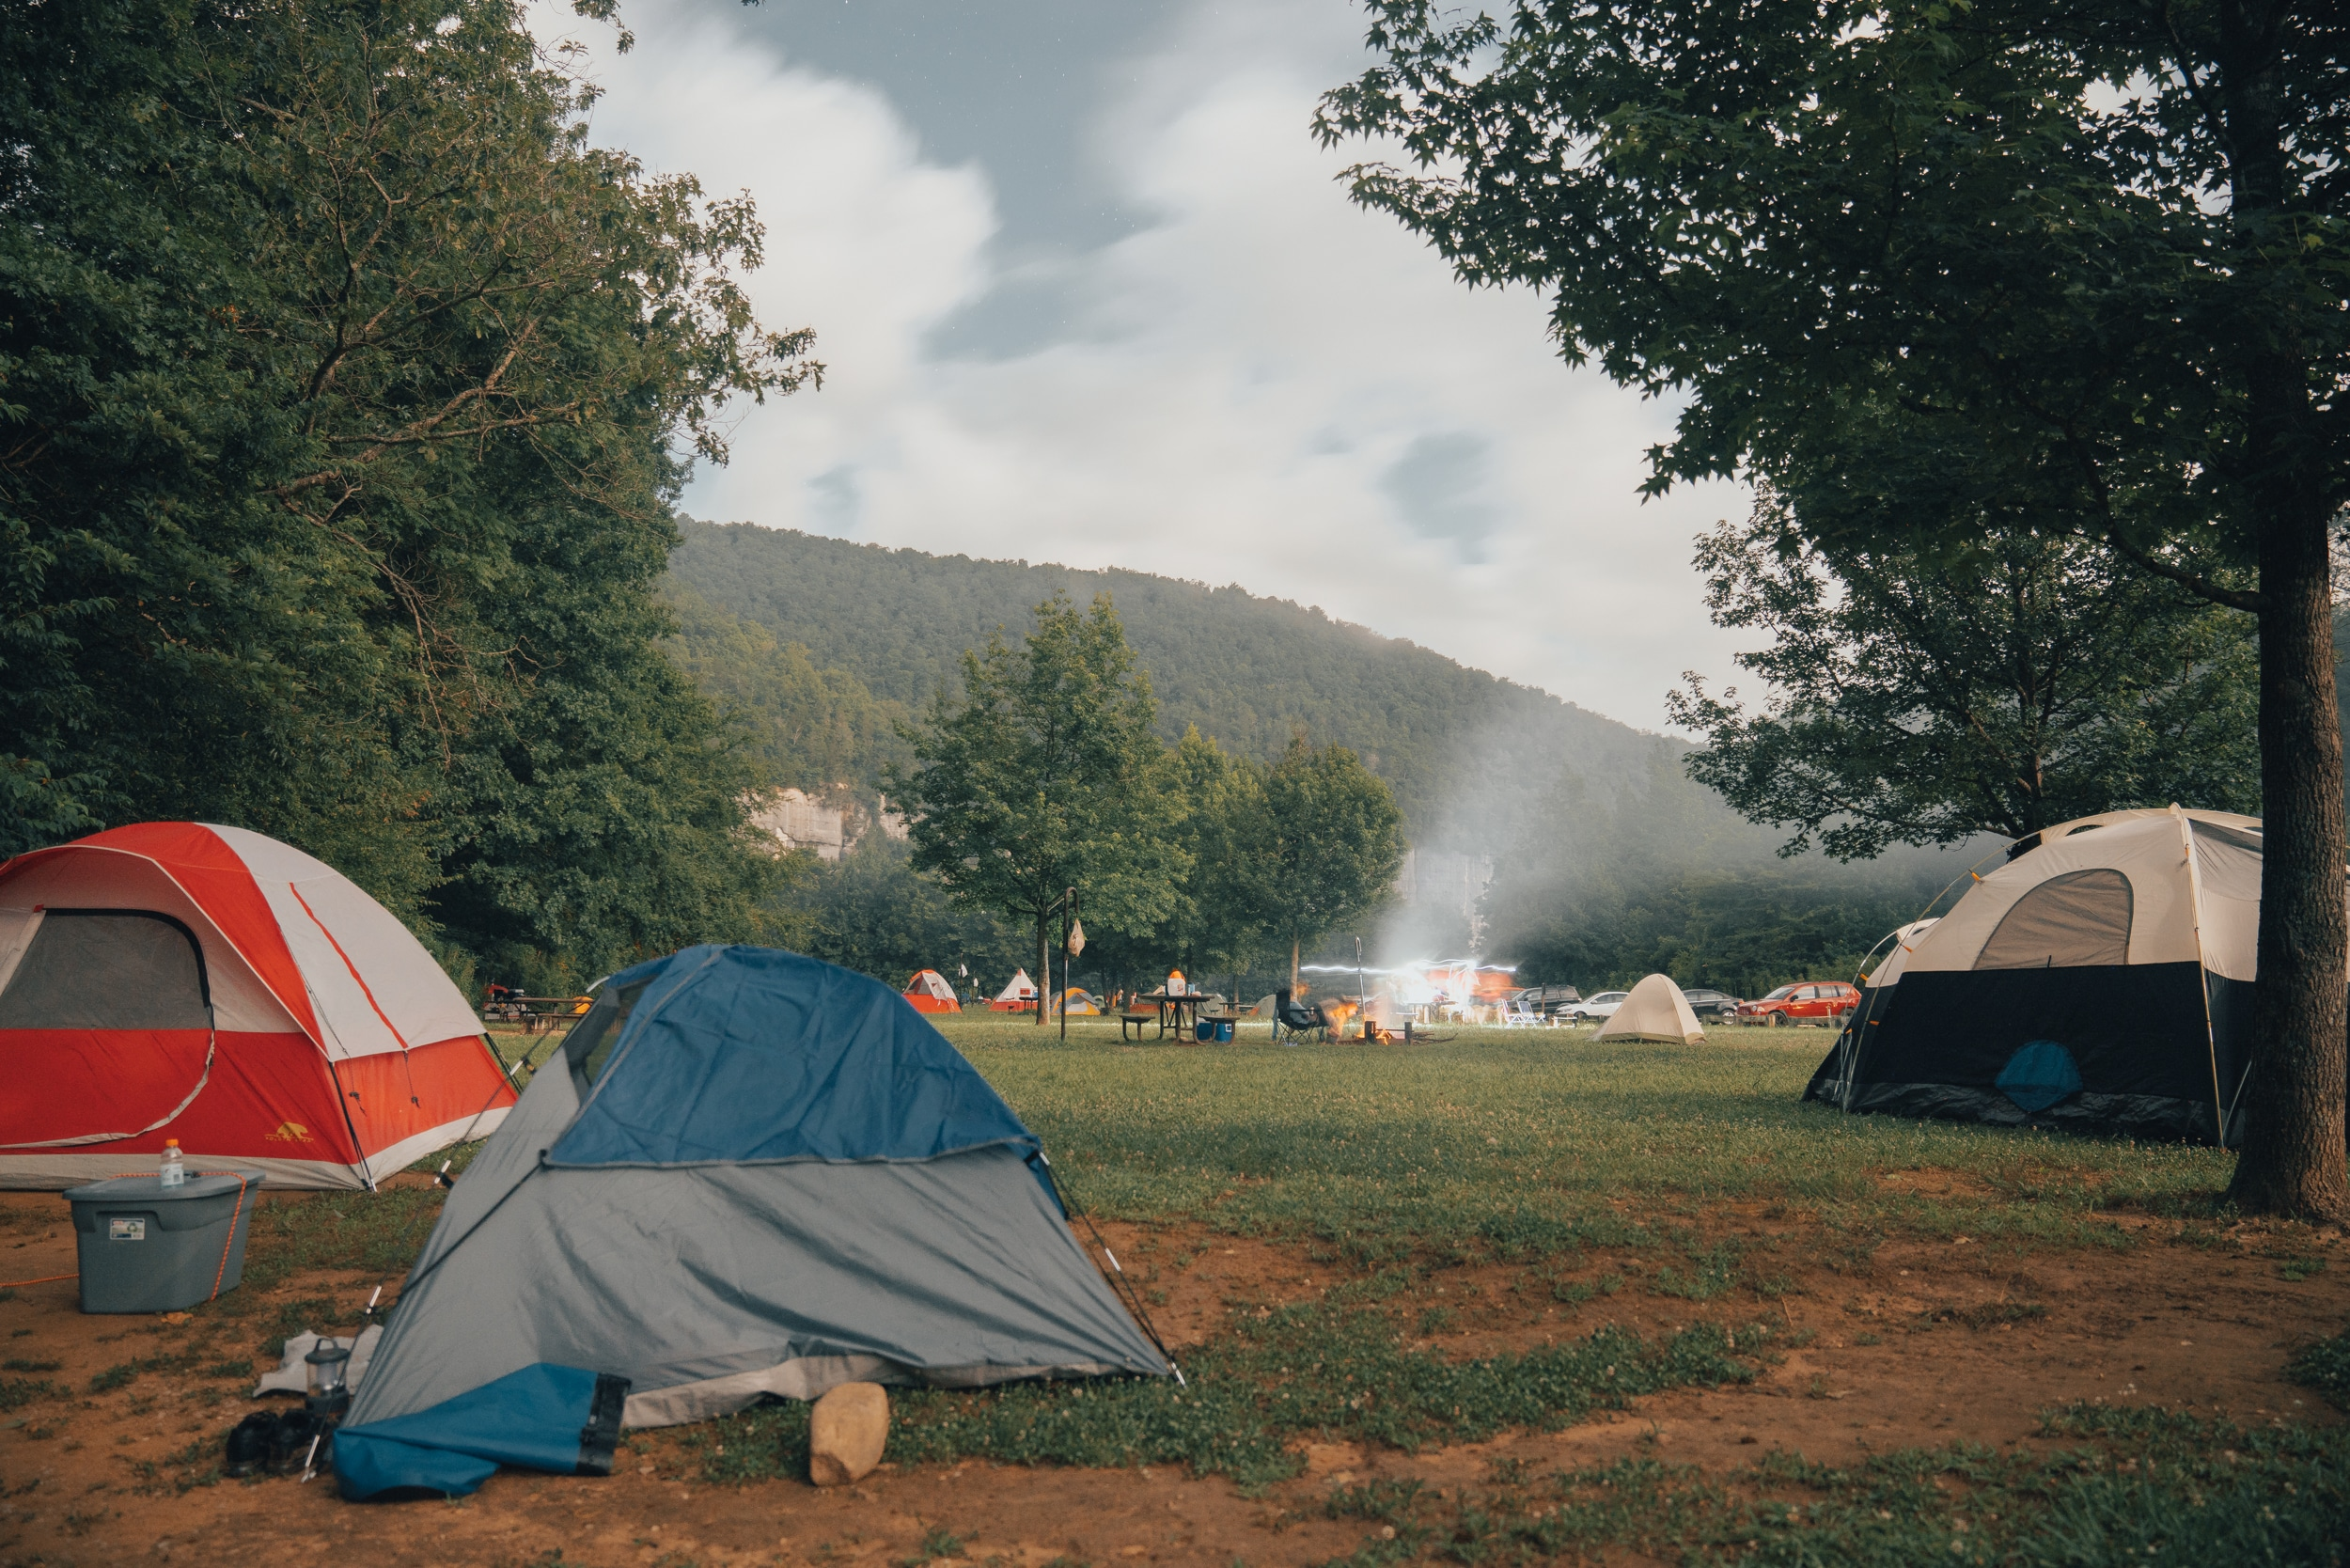 Camping at Steel Creek Campground